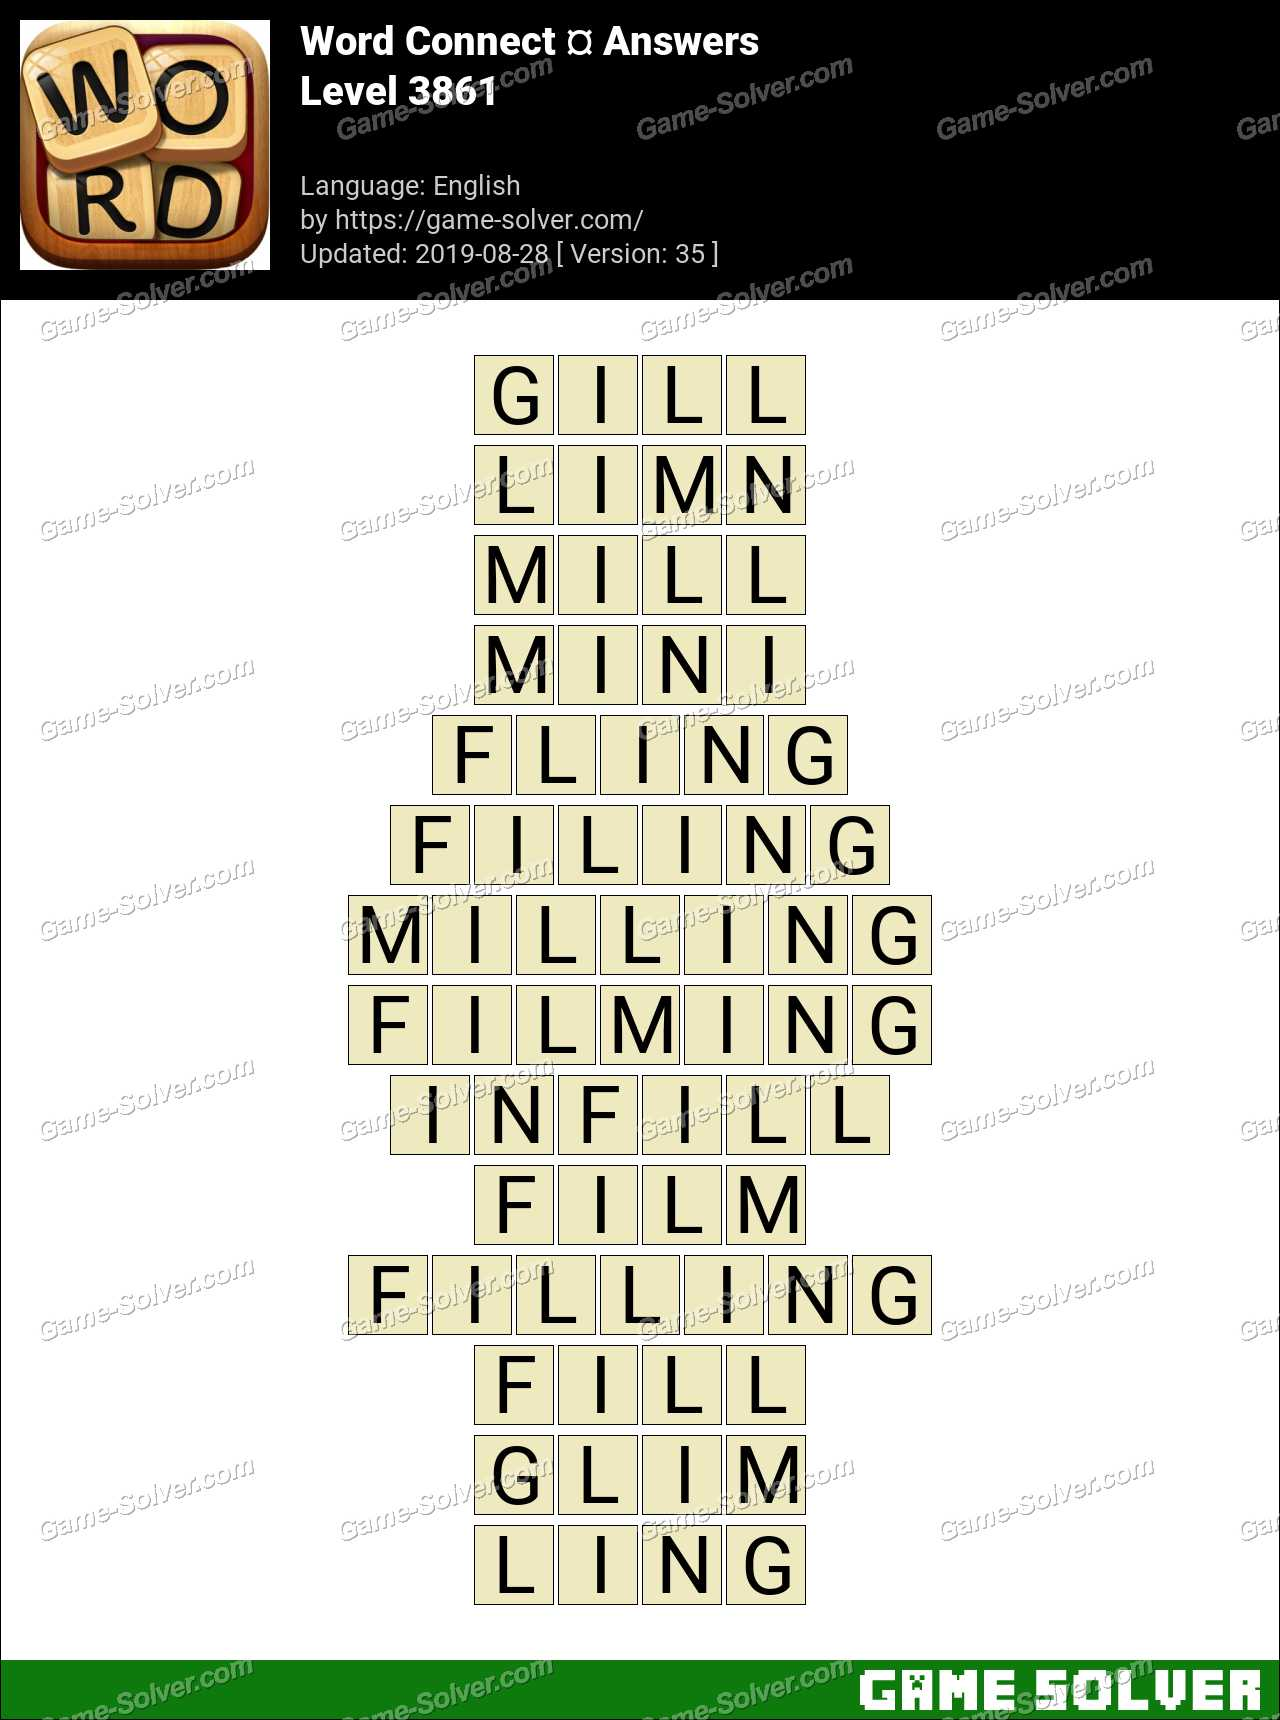 Word Connect Level 3861 Answers